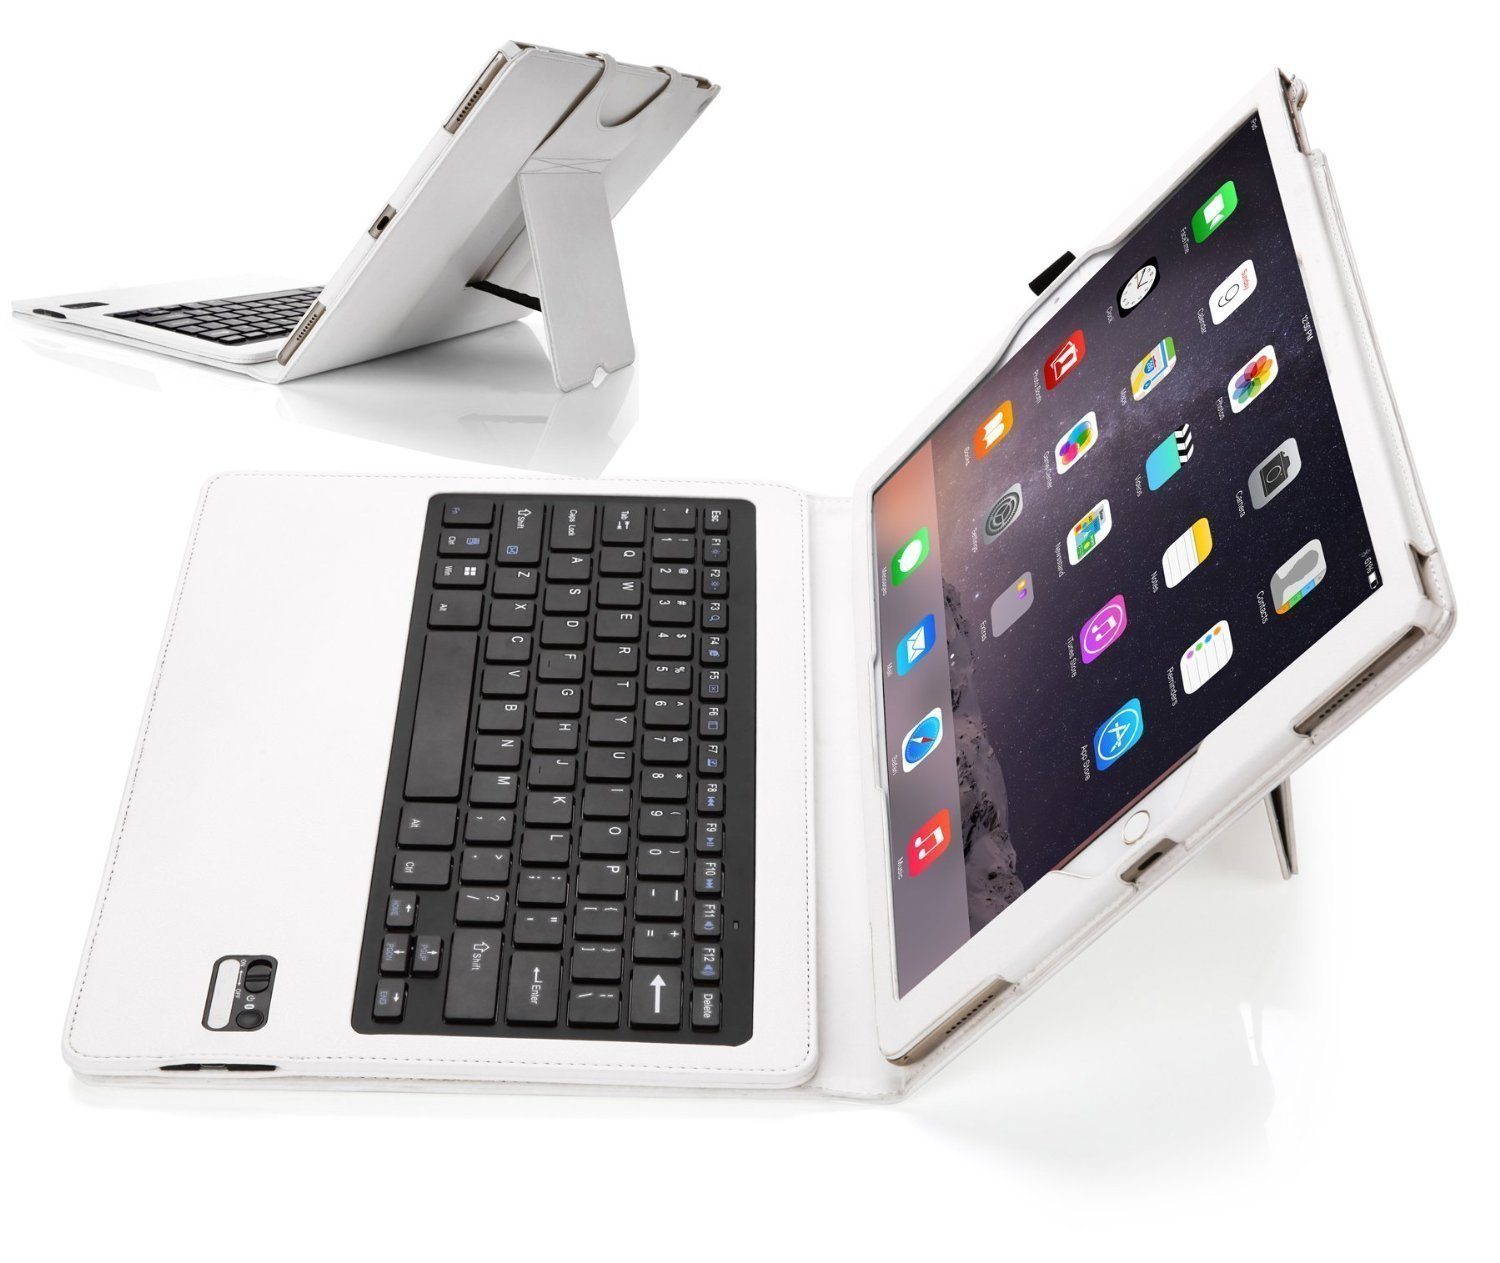 skadurz pro case model Find cases and screen protectors for your ipad against water, dust and shock shop protective covers today buy online with fast, free shipping.